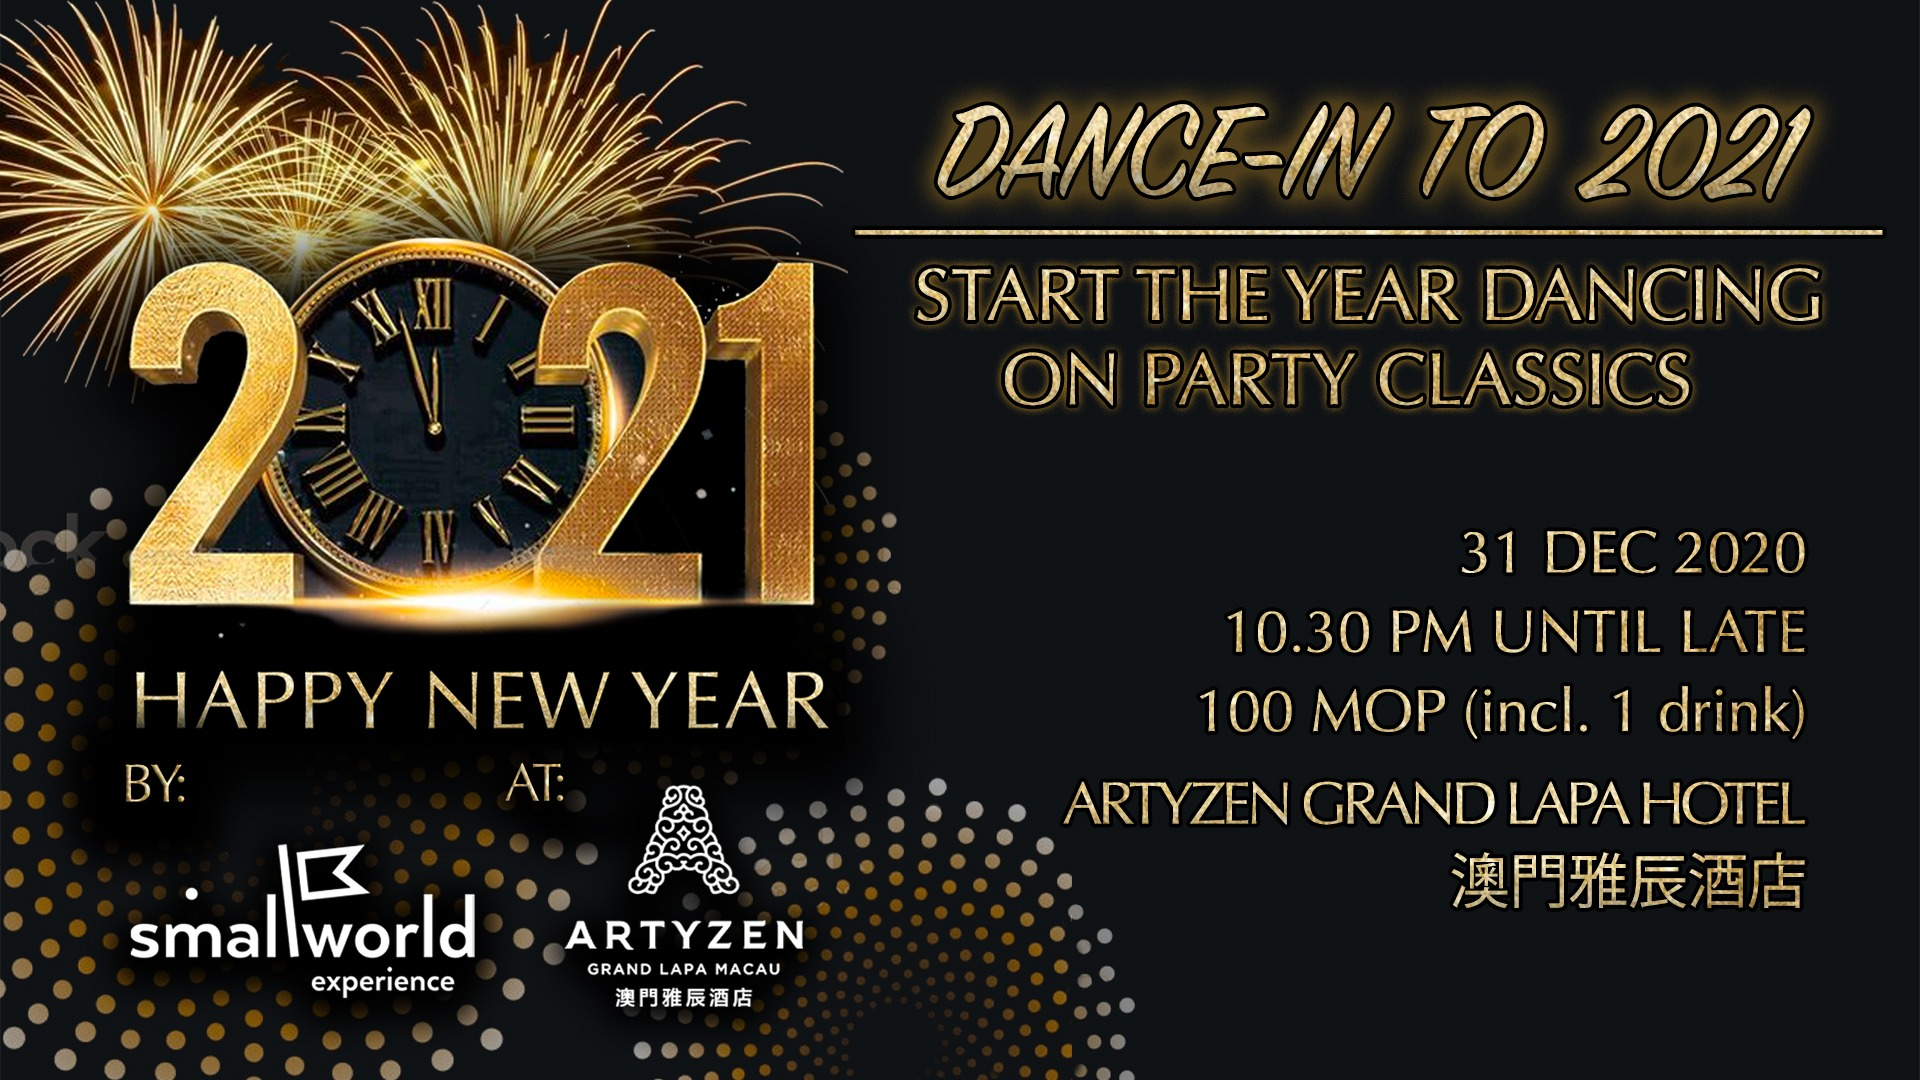 New years eve party 19-20